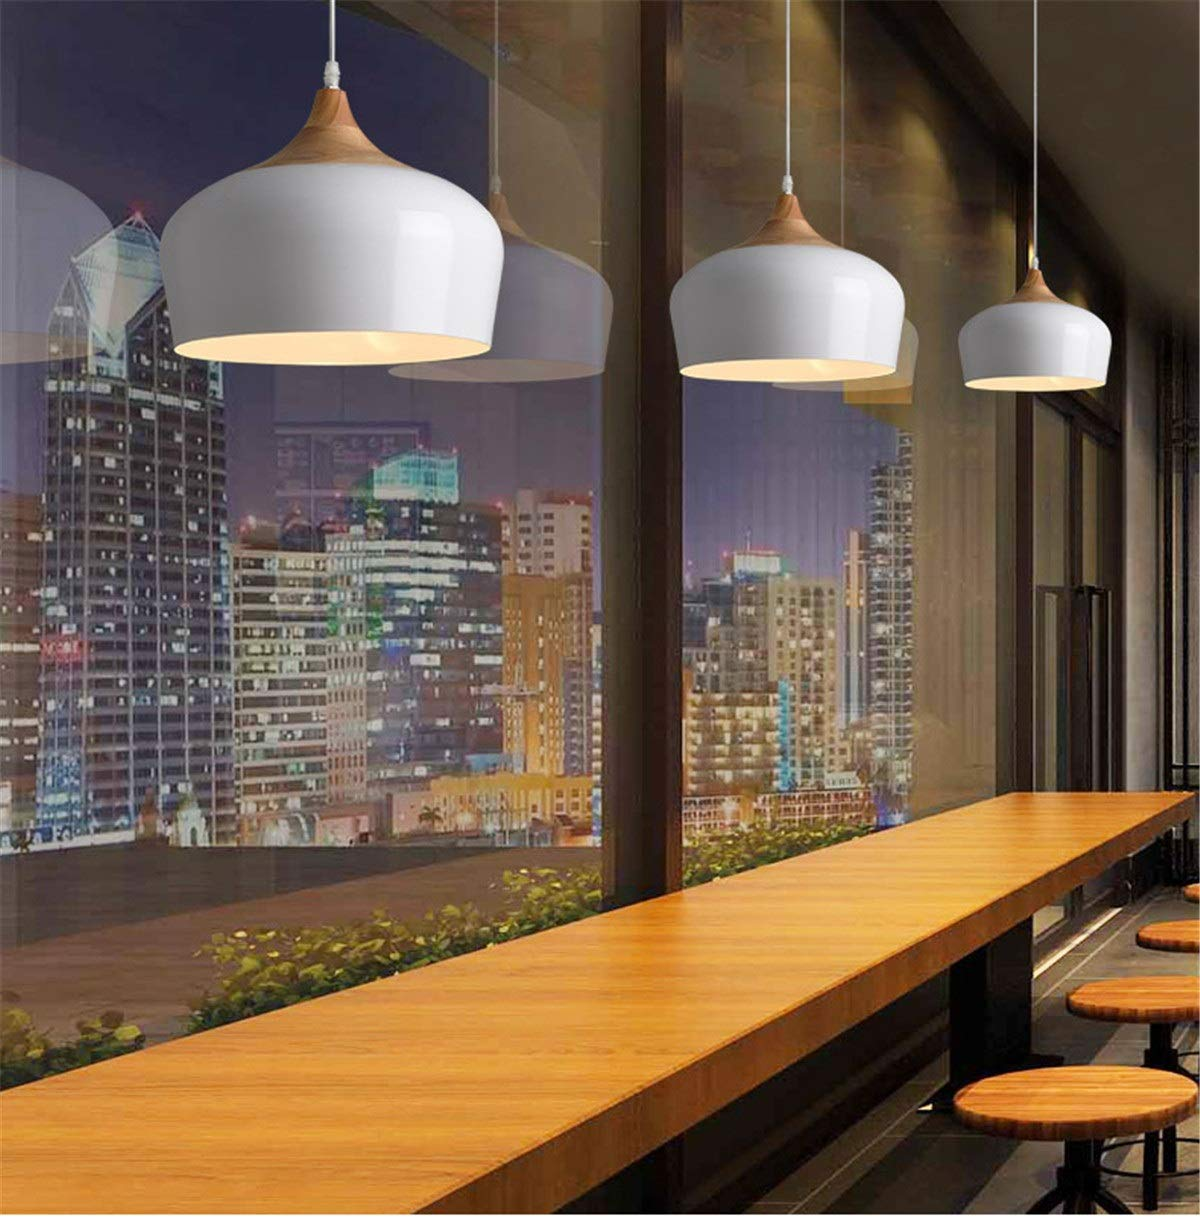 White Cool White White Cool White LL Nordic Creative Personality Single Head Chandelier Retro Bucket Creative Cafe Restaurant Solid Wood Aluminum Creative Lighting led Light Night (color   White, Size   Cool White)